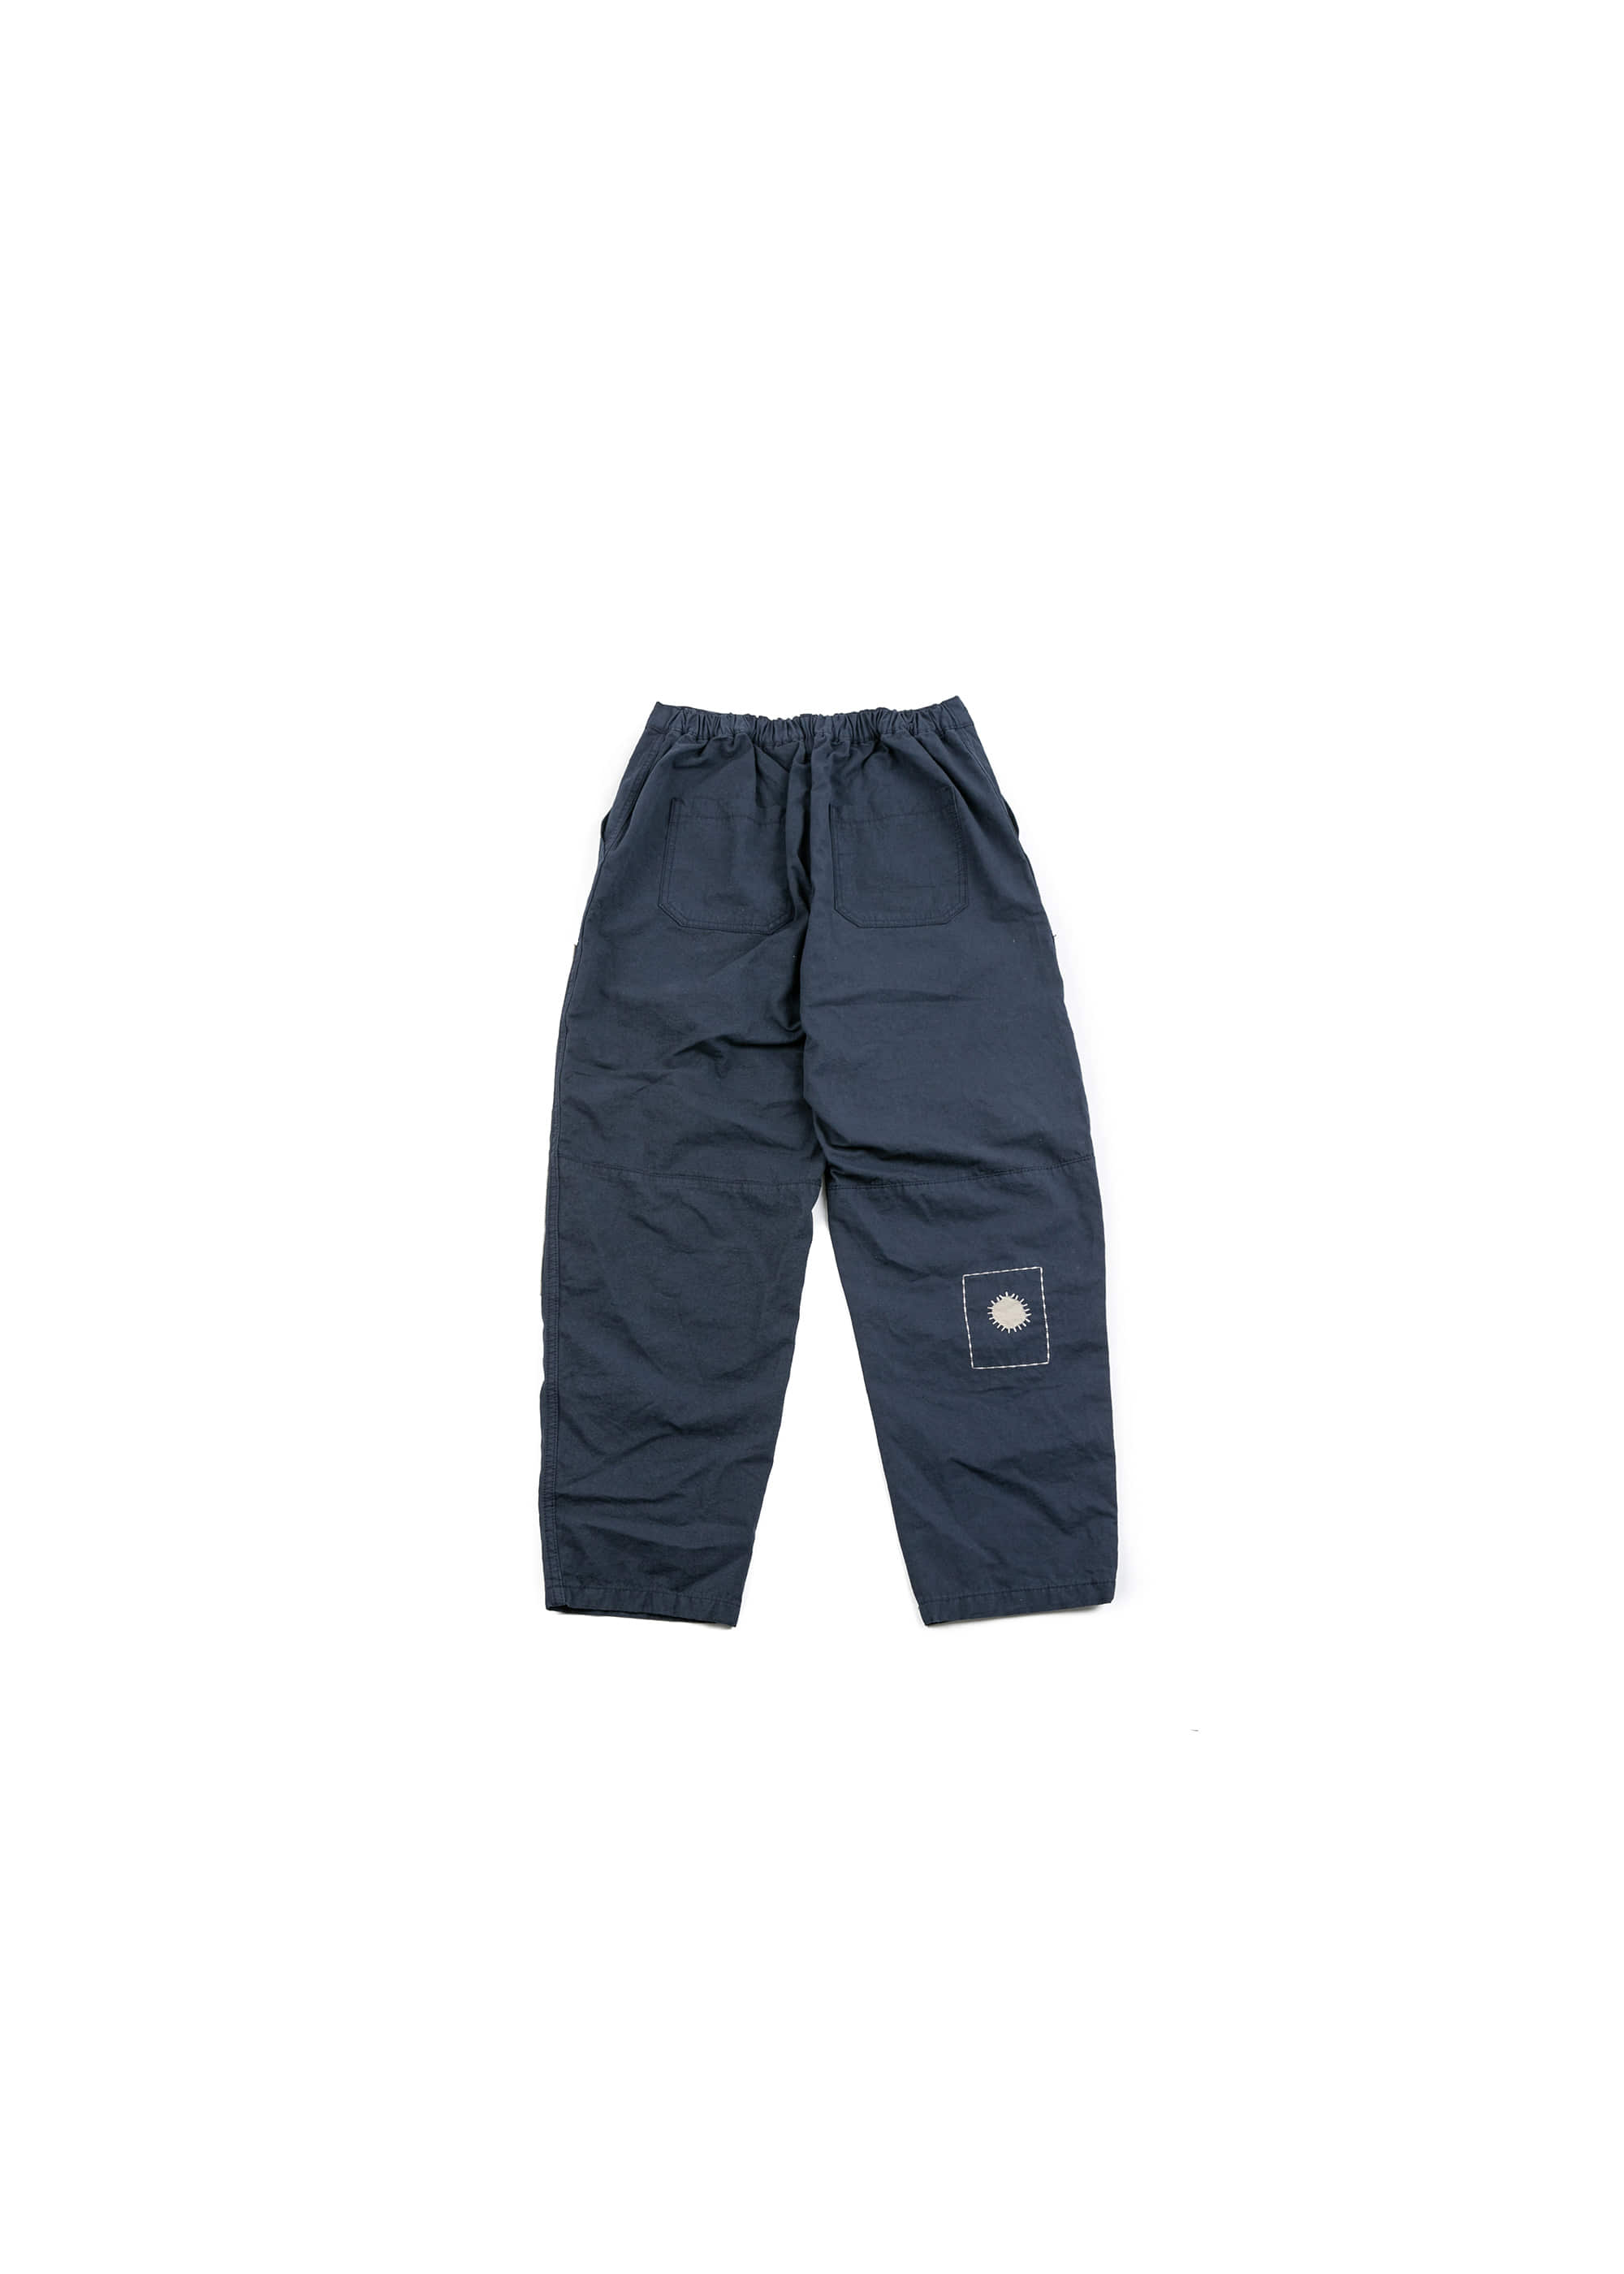 Build Patch Work Pants - Navy